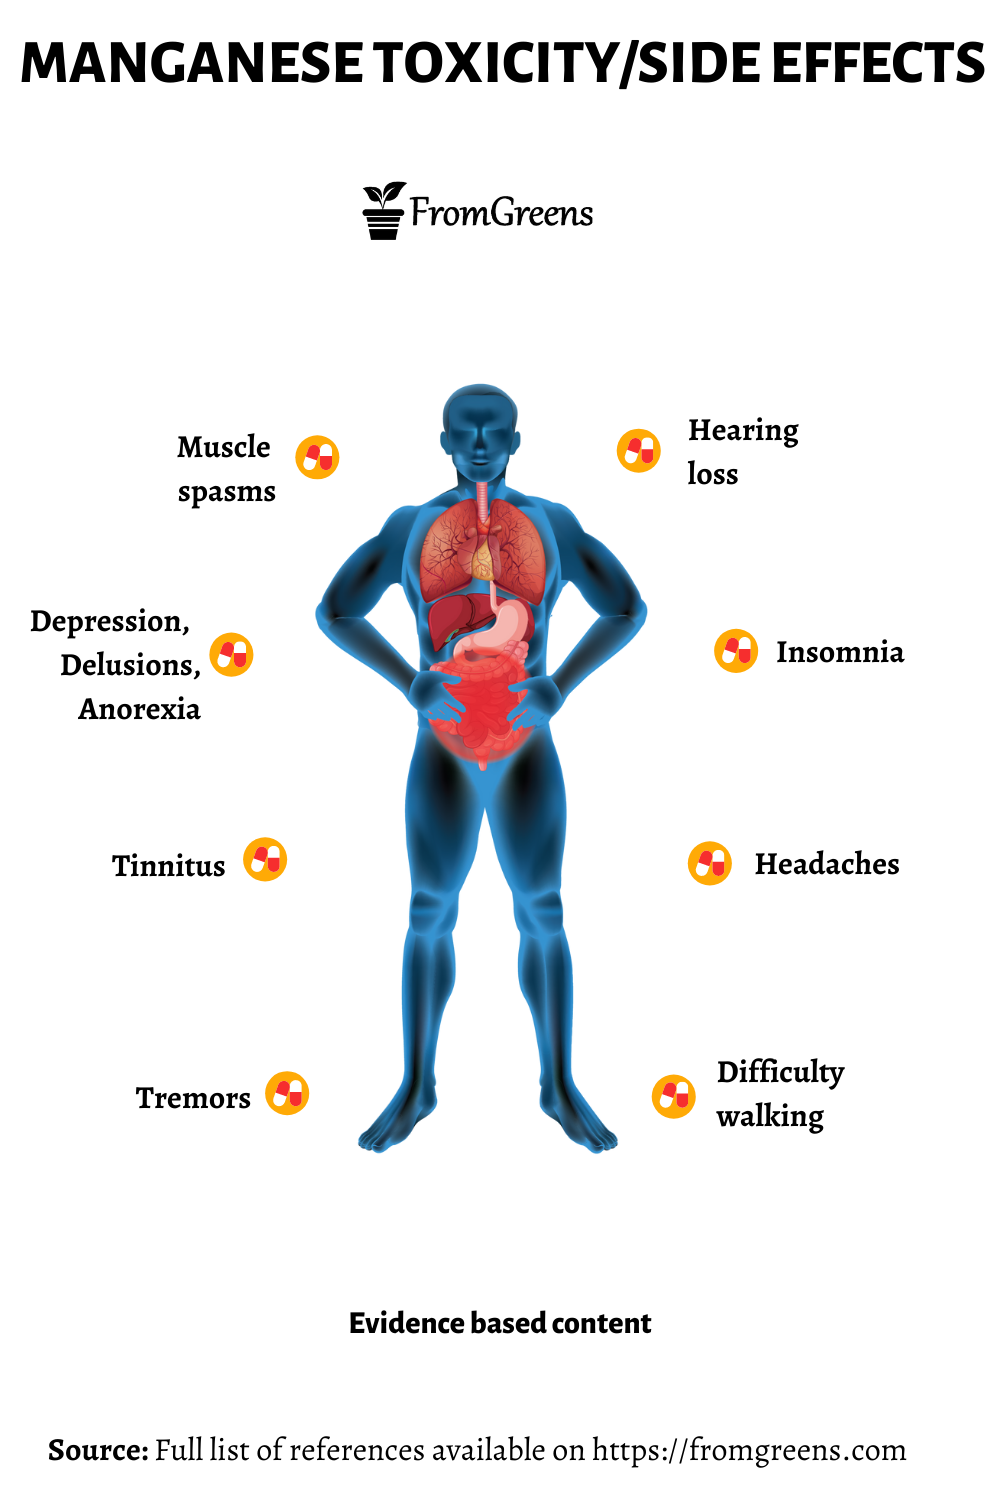 Manganese toxicity / side effects - Evidence based content